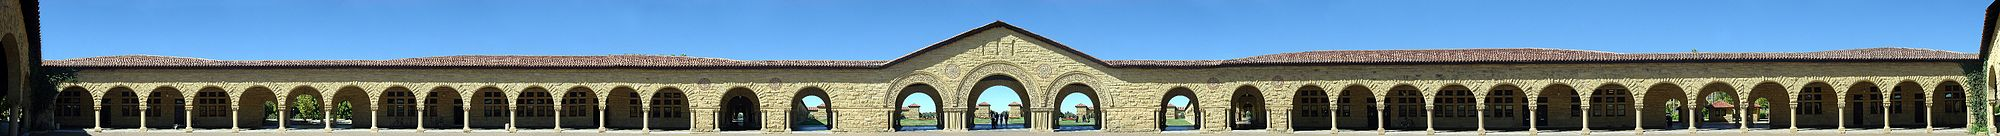 Orthographic panorama of the Main Quad, located in the heart of the Stanford University campus.